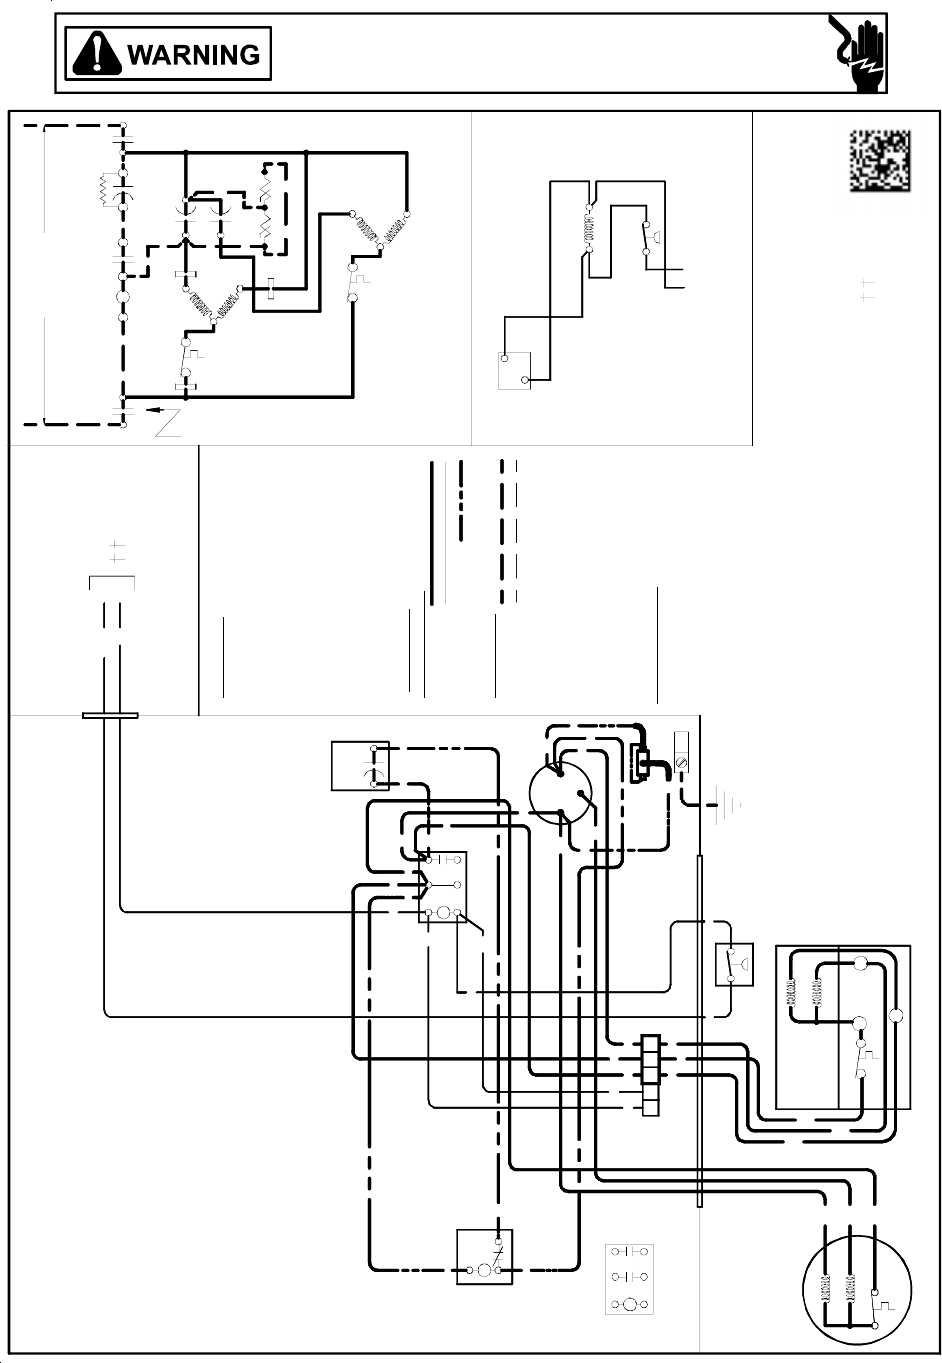 archtop wiring diagram with Keyboard Guide Wiring Diagrams on Telechargements in addition Epiphone Wiring Harness in addition Esquire Wiring Diagram Humbucker additionally Gibson Burstbucker Wiring Diagram also Wiring Diagram Electric Golf Cart.